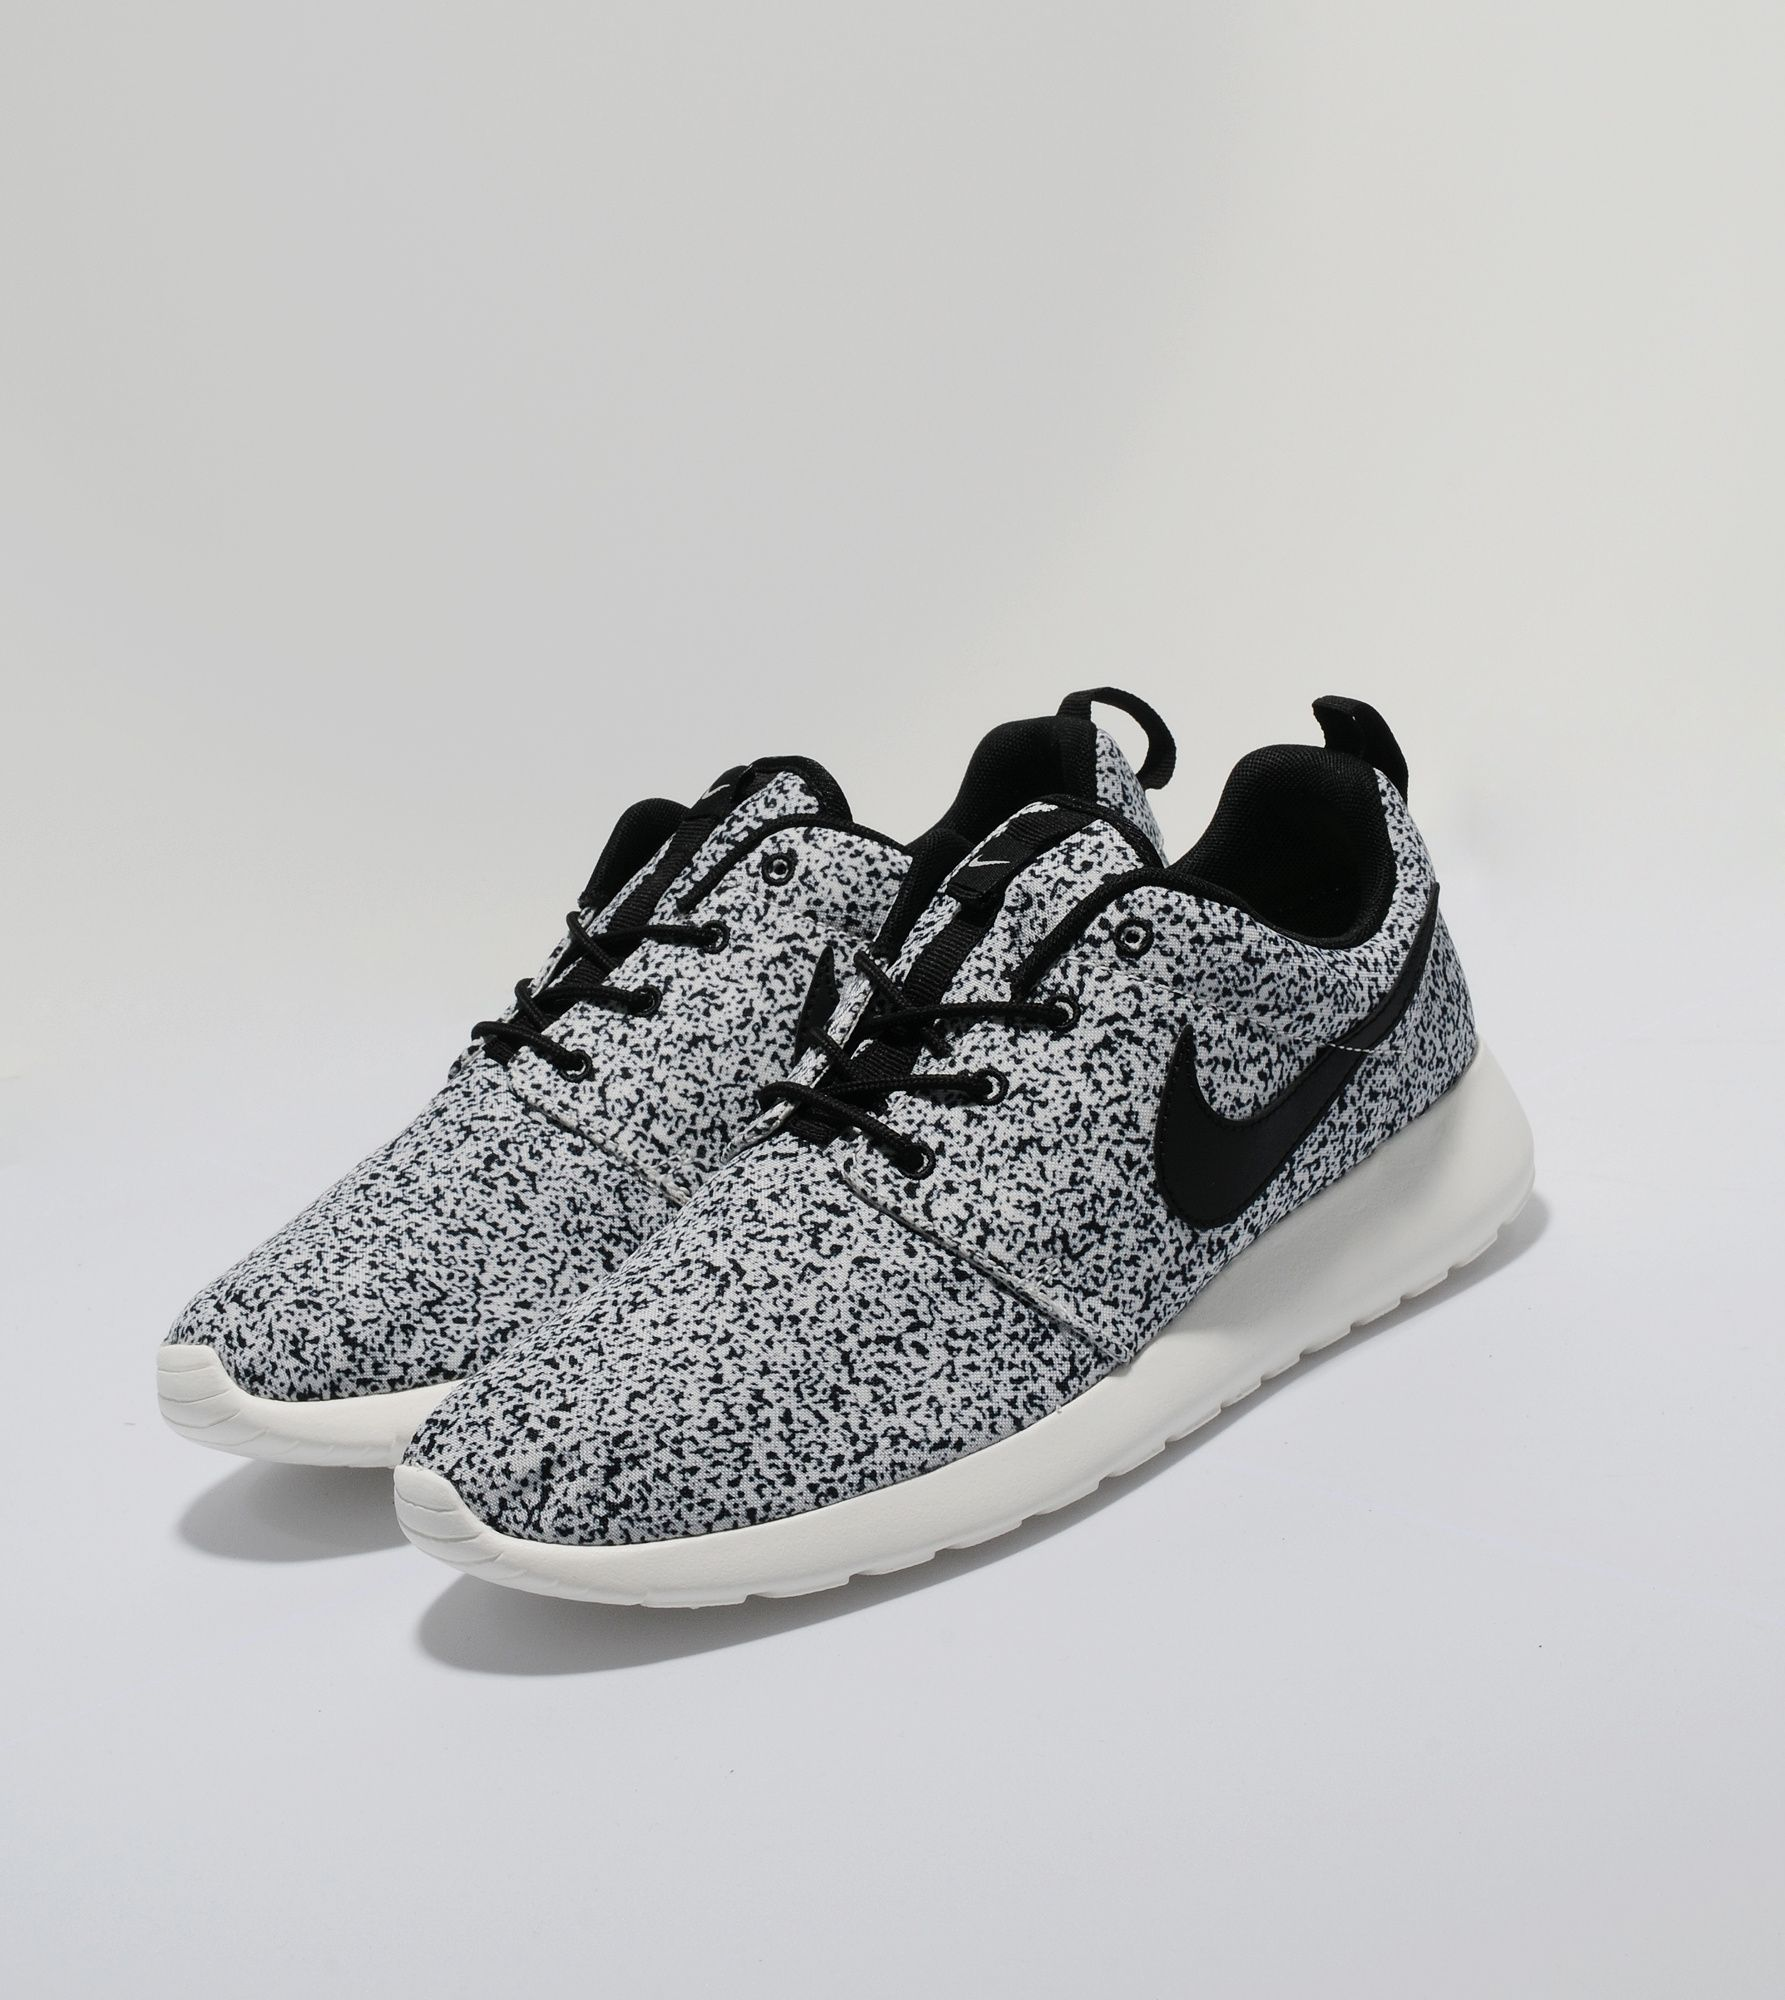 brand new 6481d d8d44 Nike Roshe Run Speckle   Size